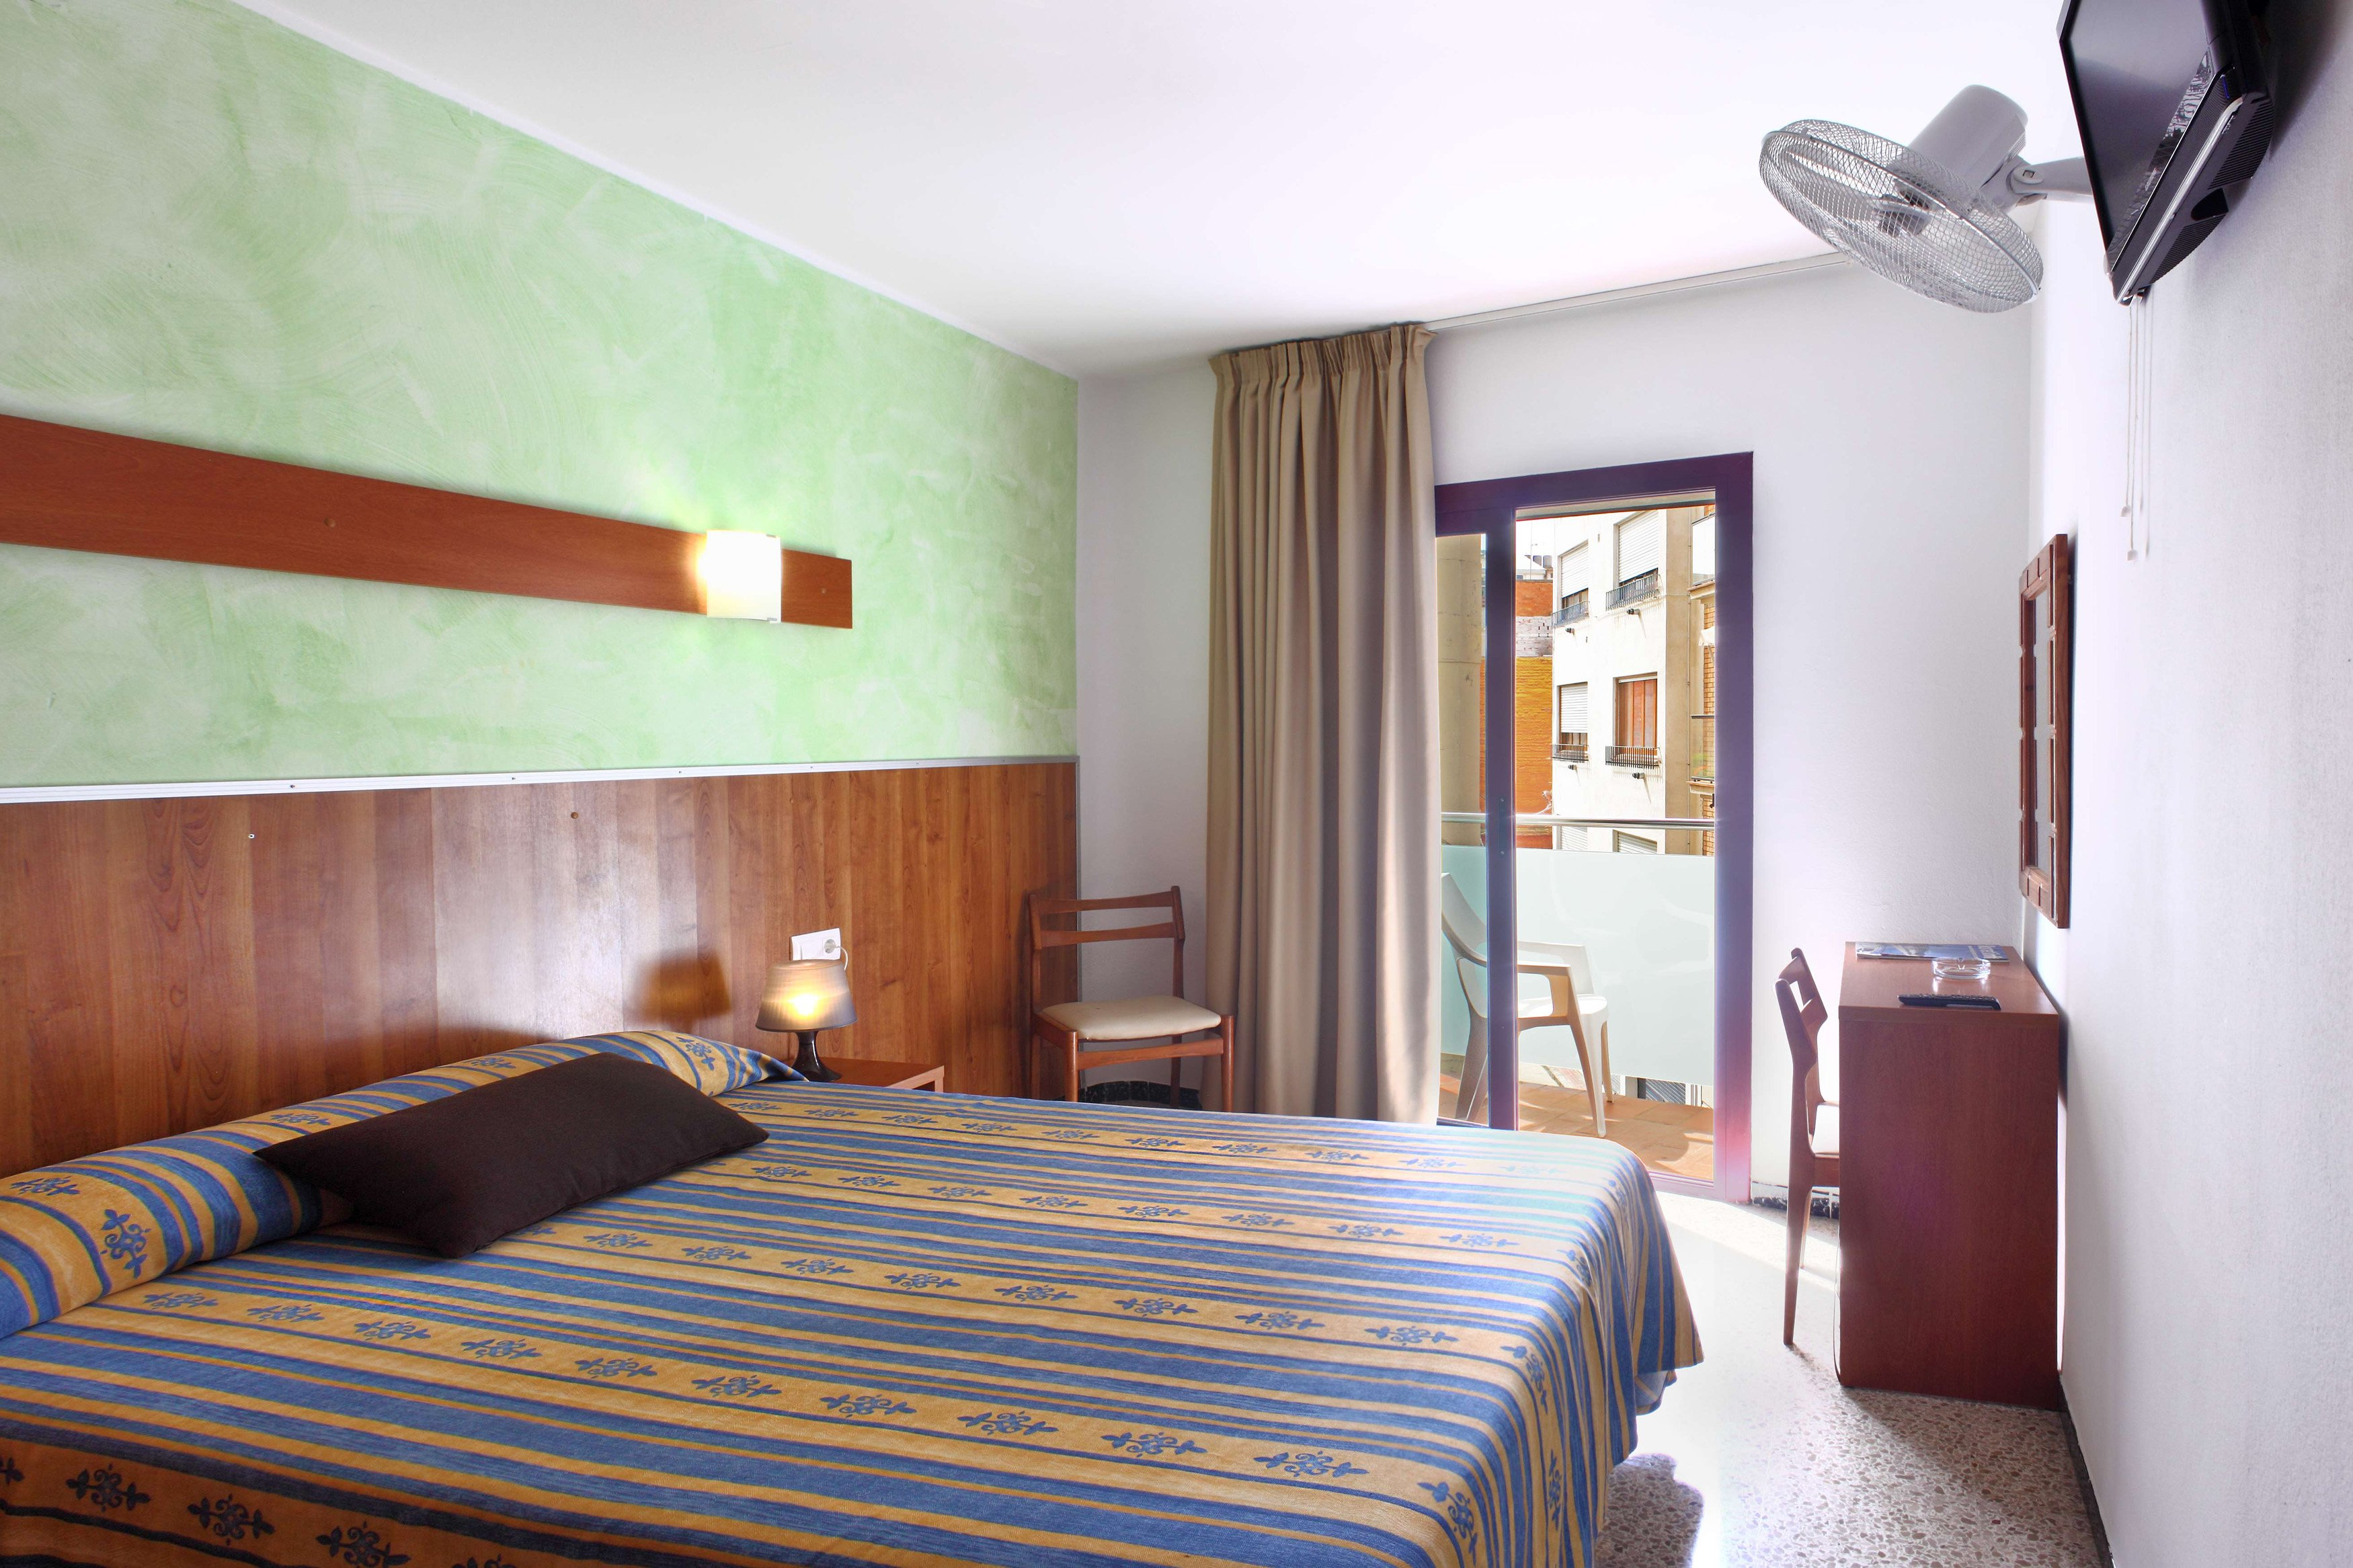 Double Room with Balcony and Private Bathroom 0